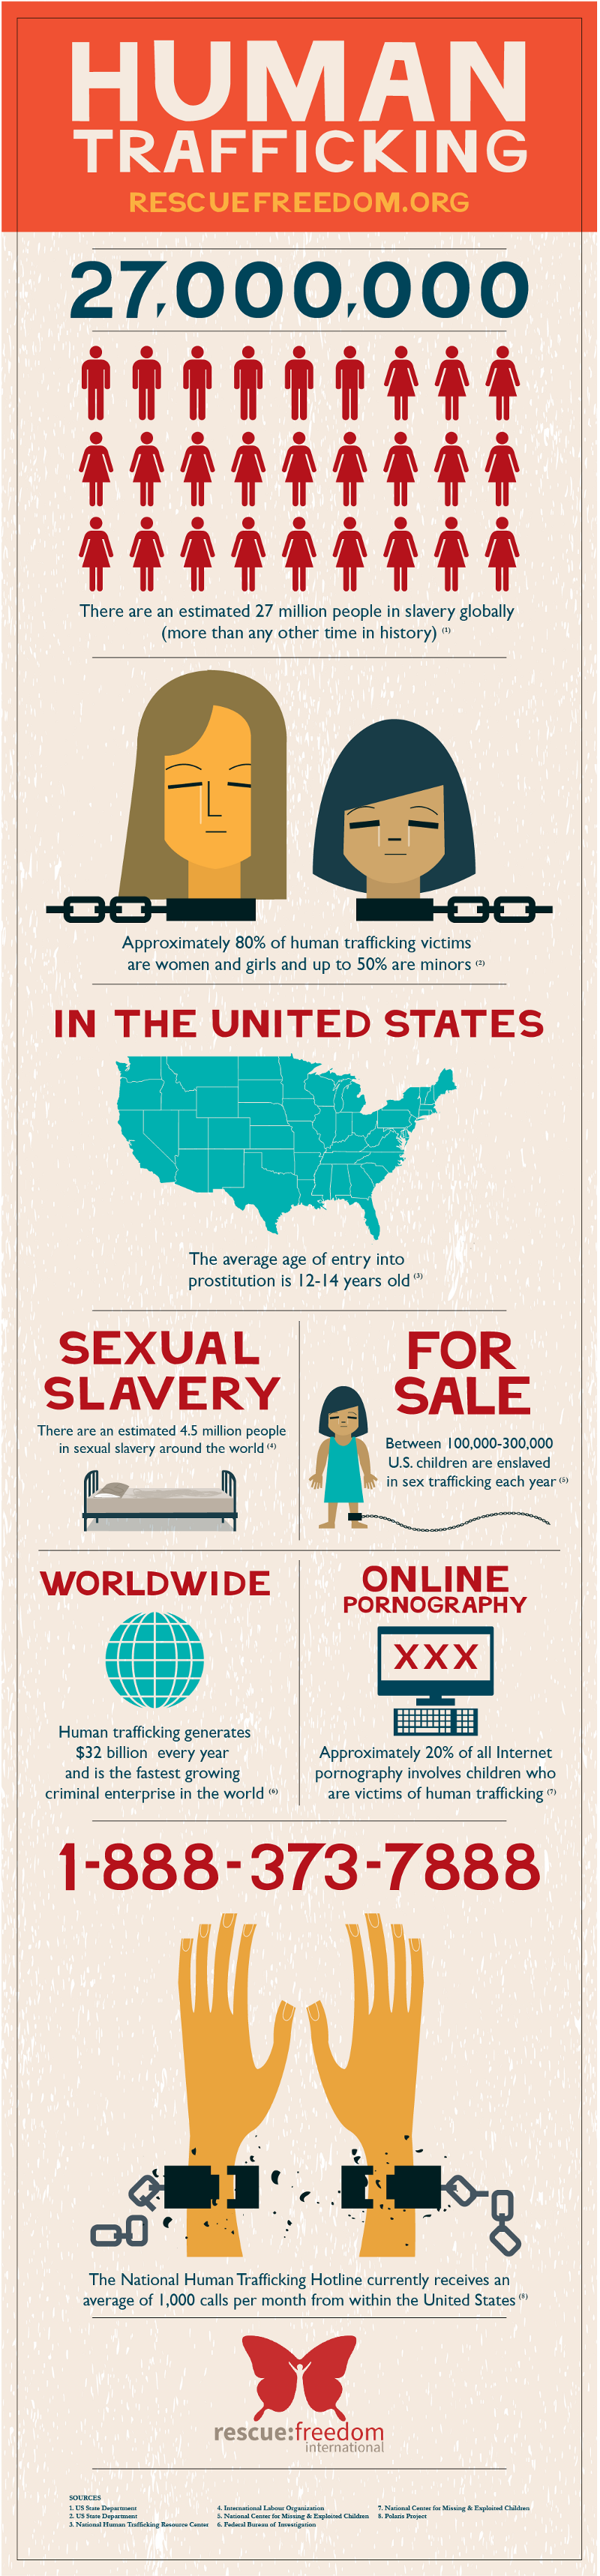 Human Trafficking Facts and Stats